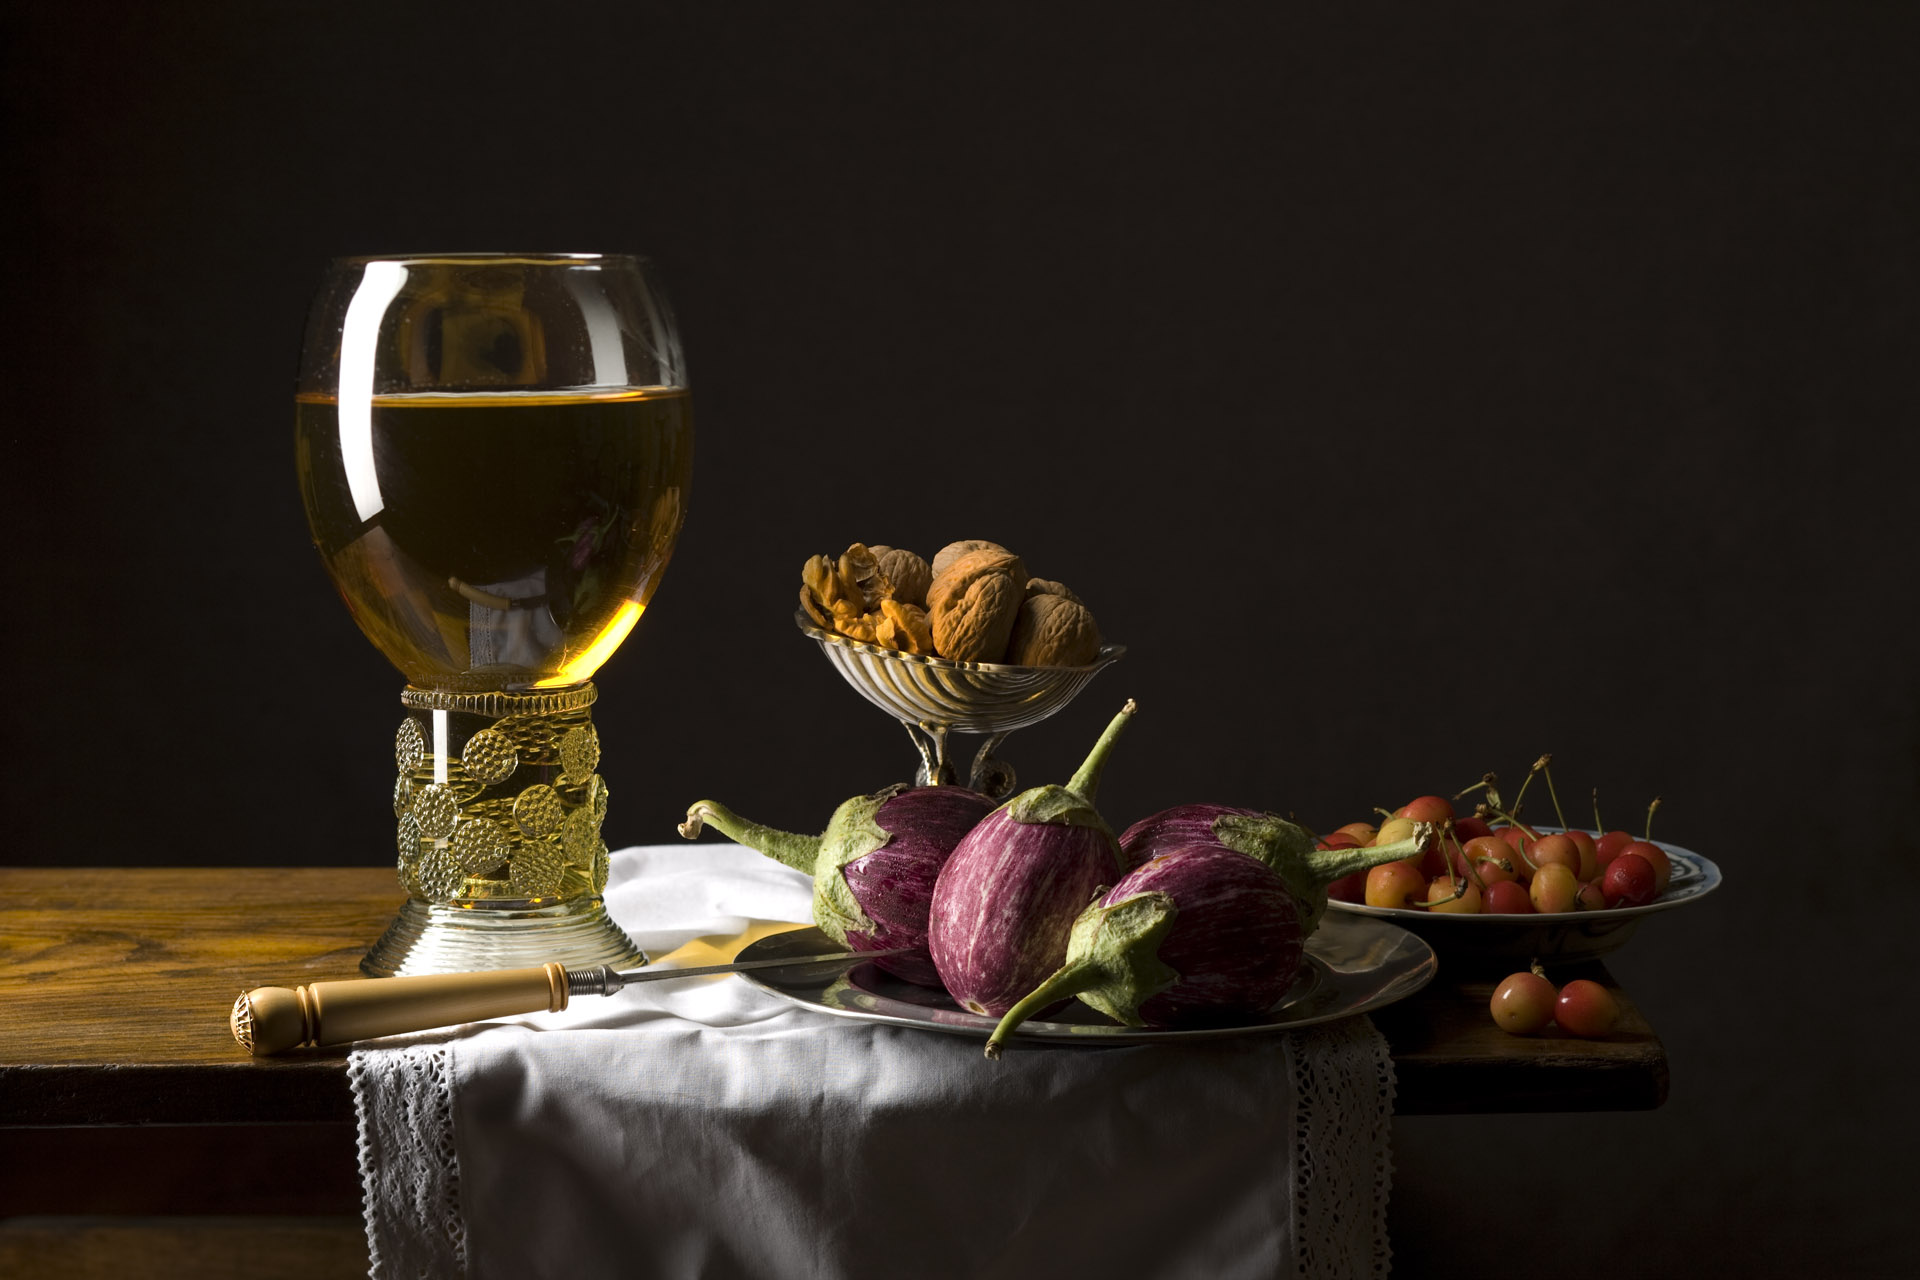 Still Life with nuts and eggplant